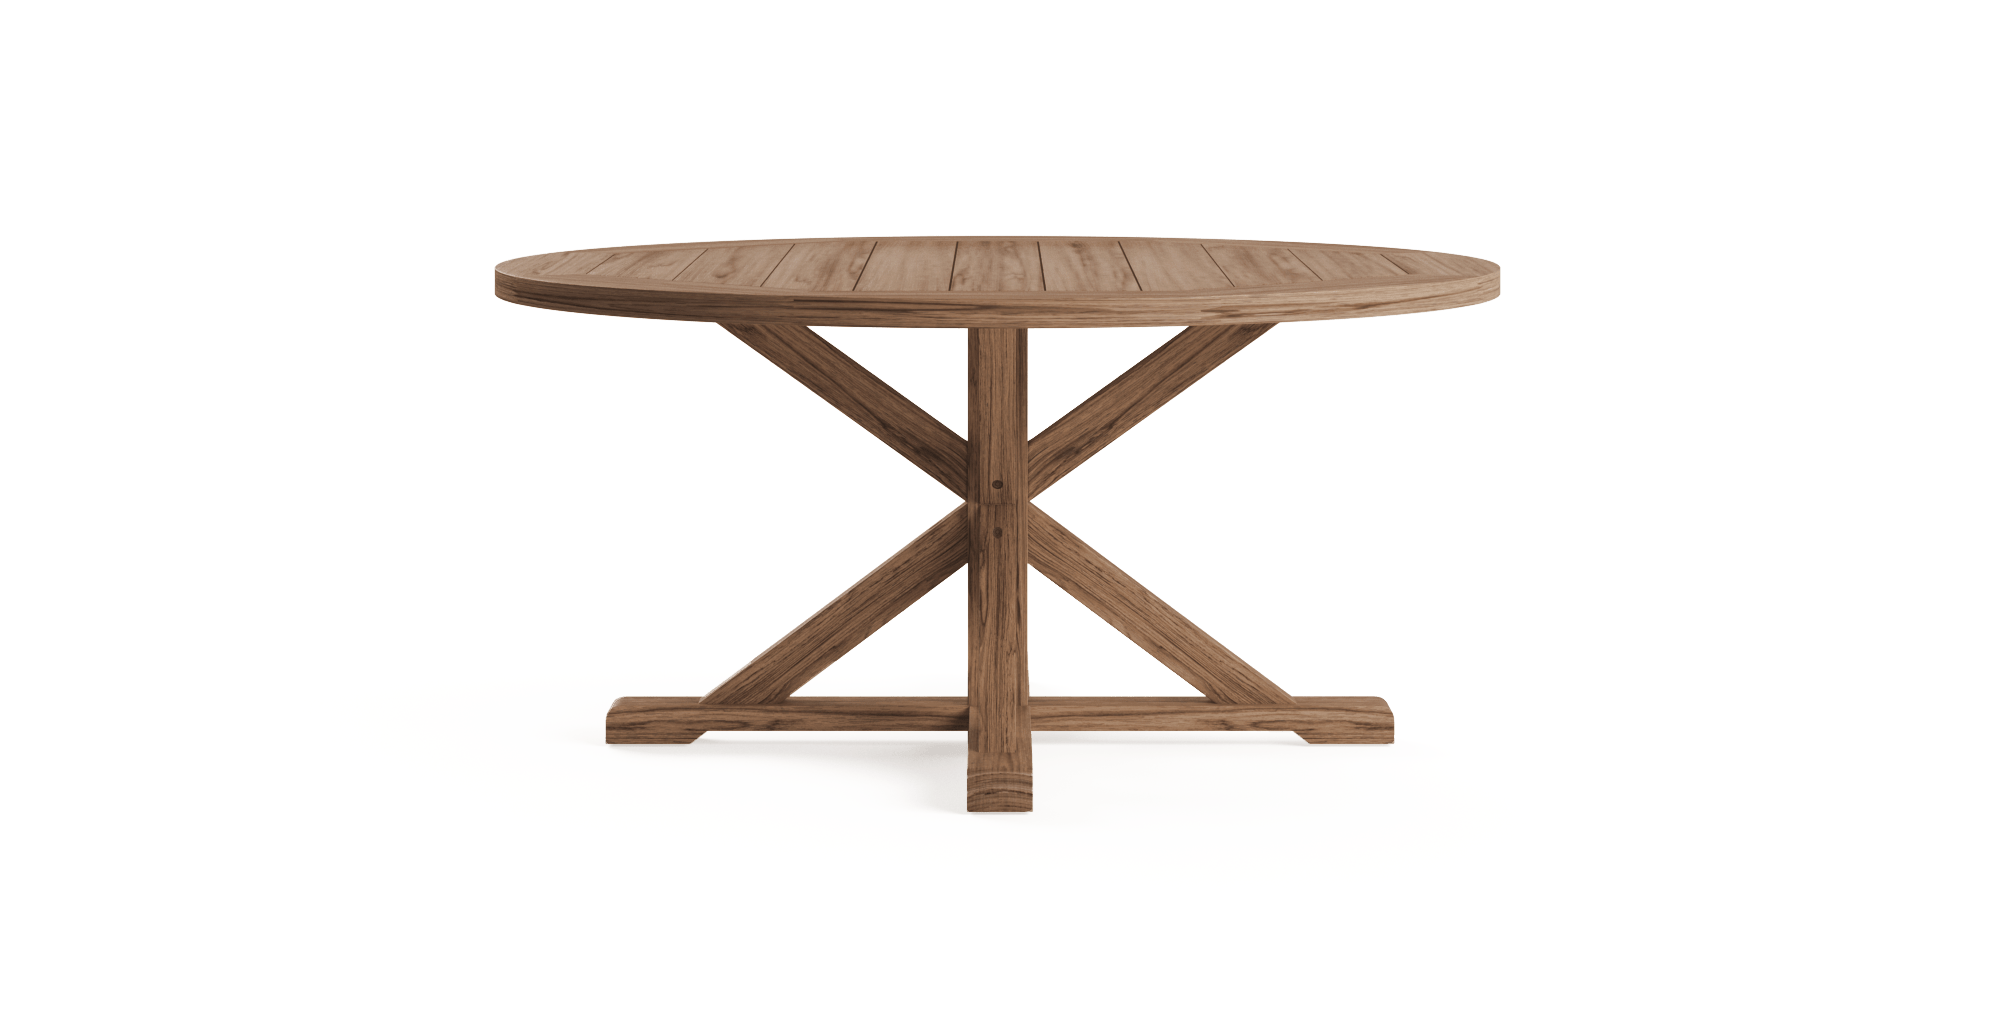 Outdoor round dining table - Outdoor Round Dining Table 9